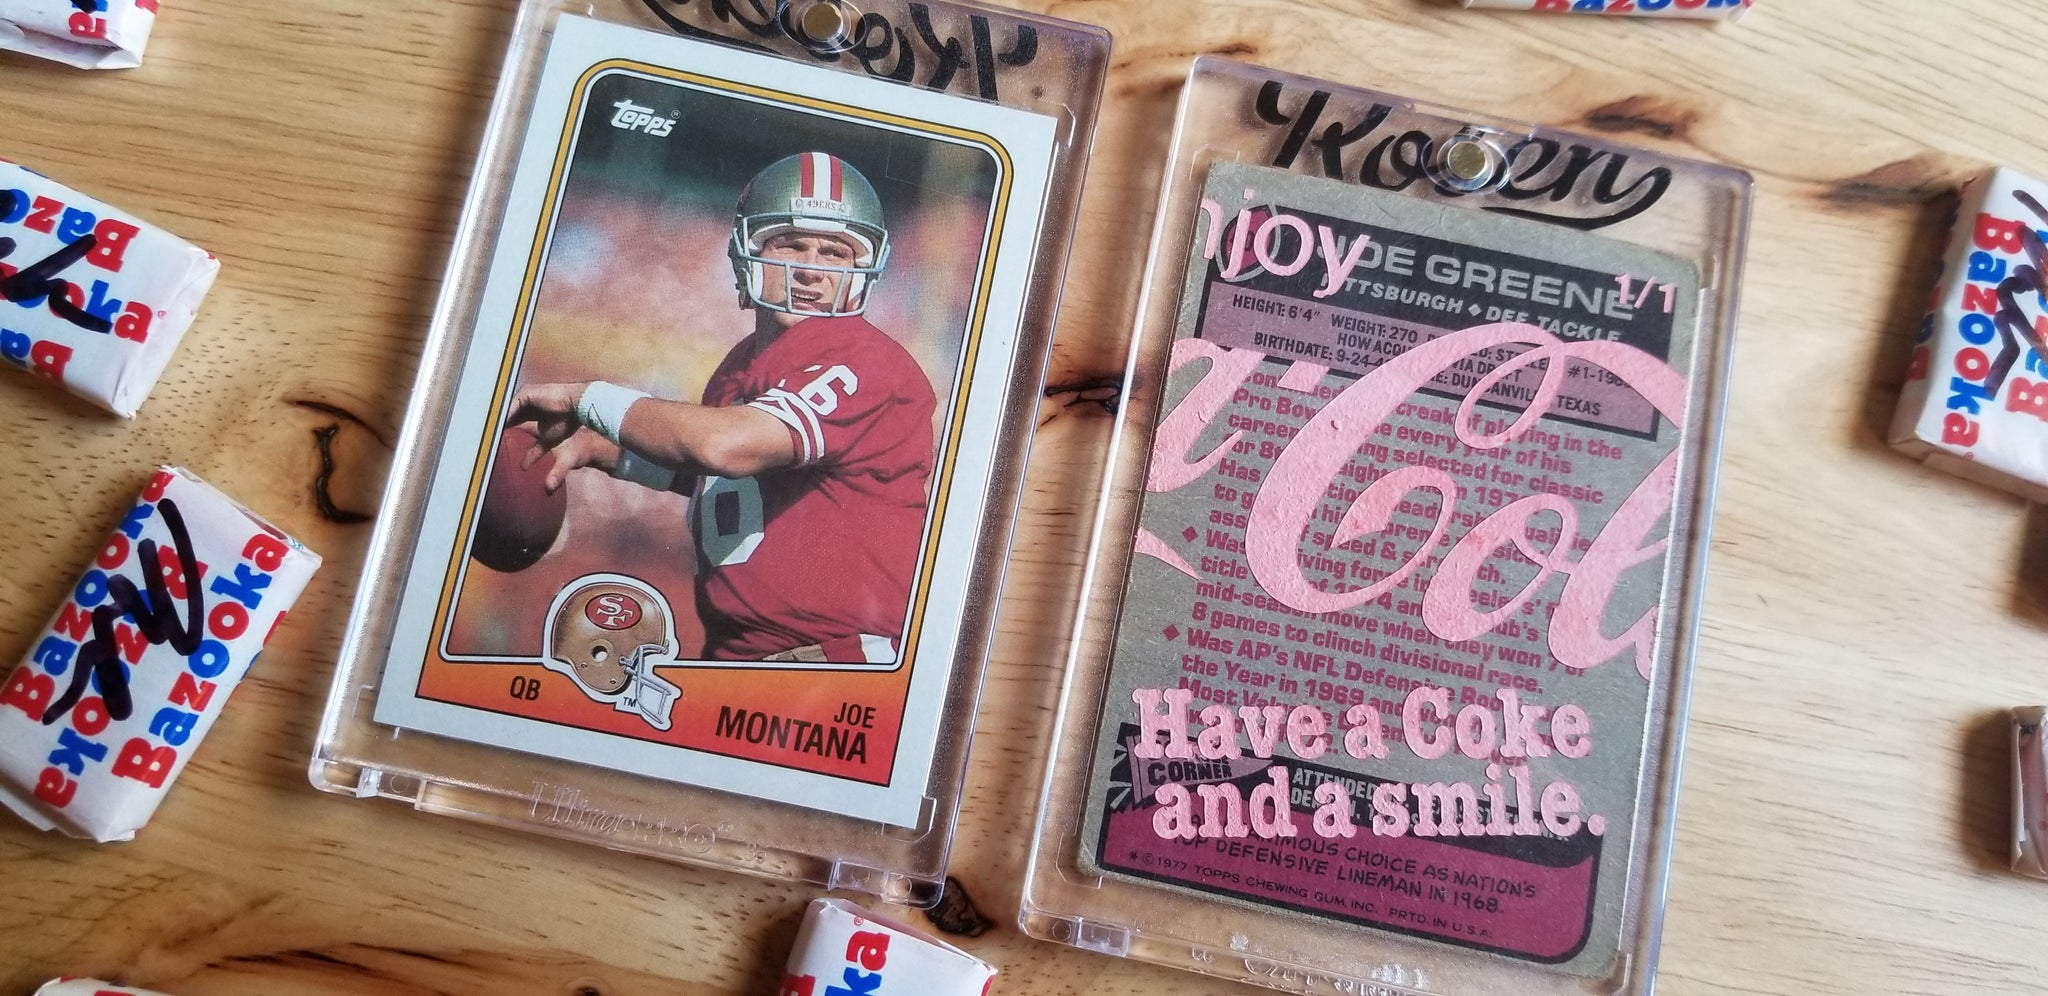 Baseball card art by Matthew Rosen - Joe Montana & Mean Joe Greene